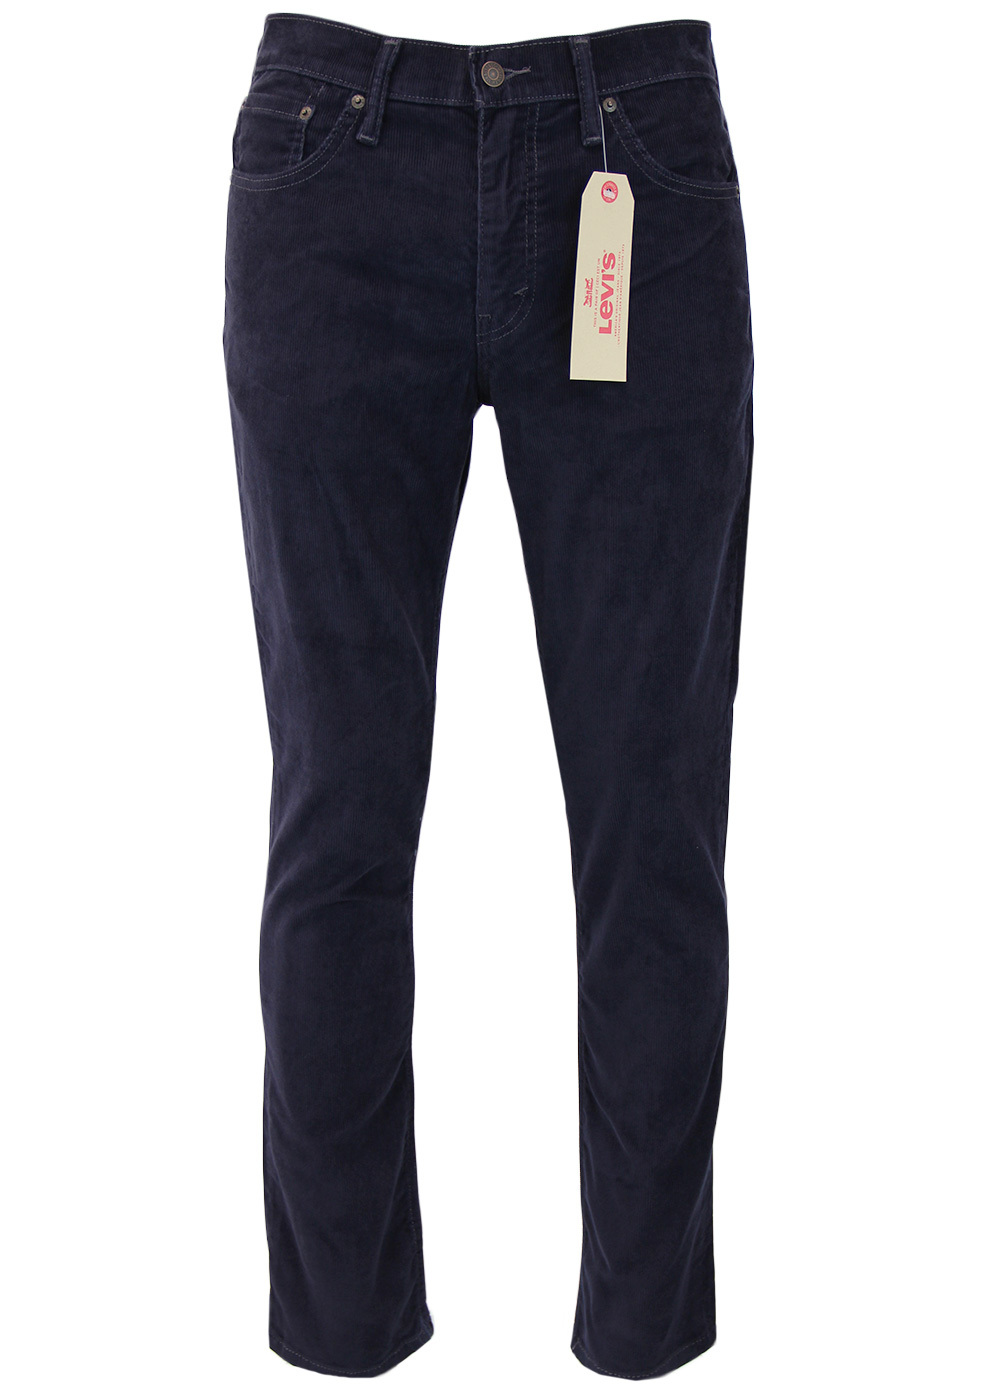 1639ea12ae8f LEVI S® 511 Retro Mod60s Slim Fit Cord Jeans in Nightwatch Blue